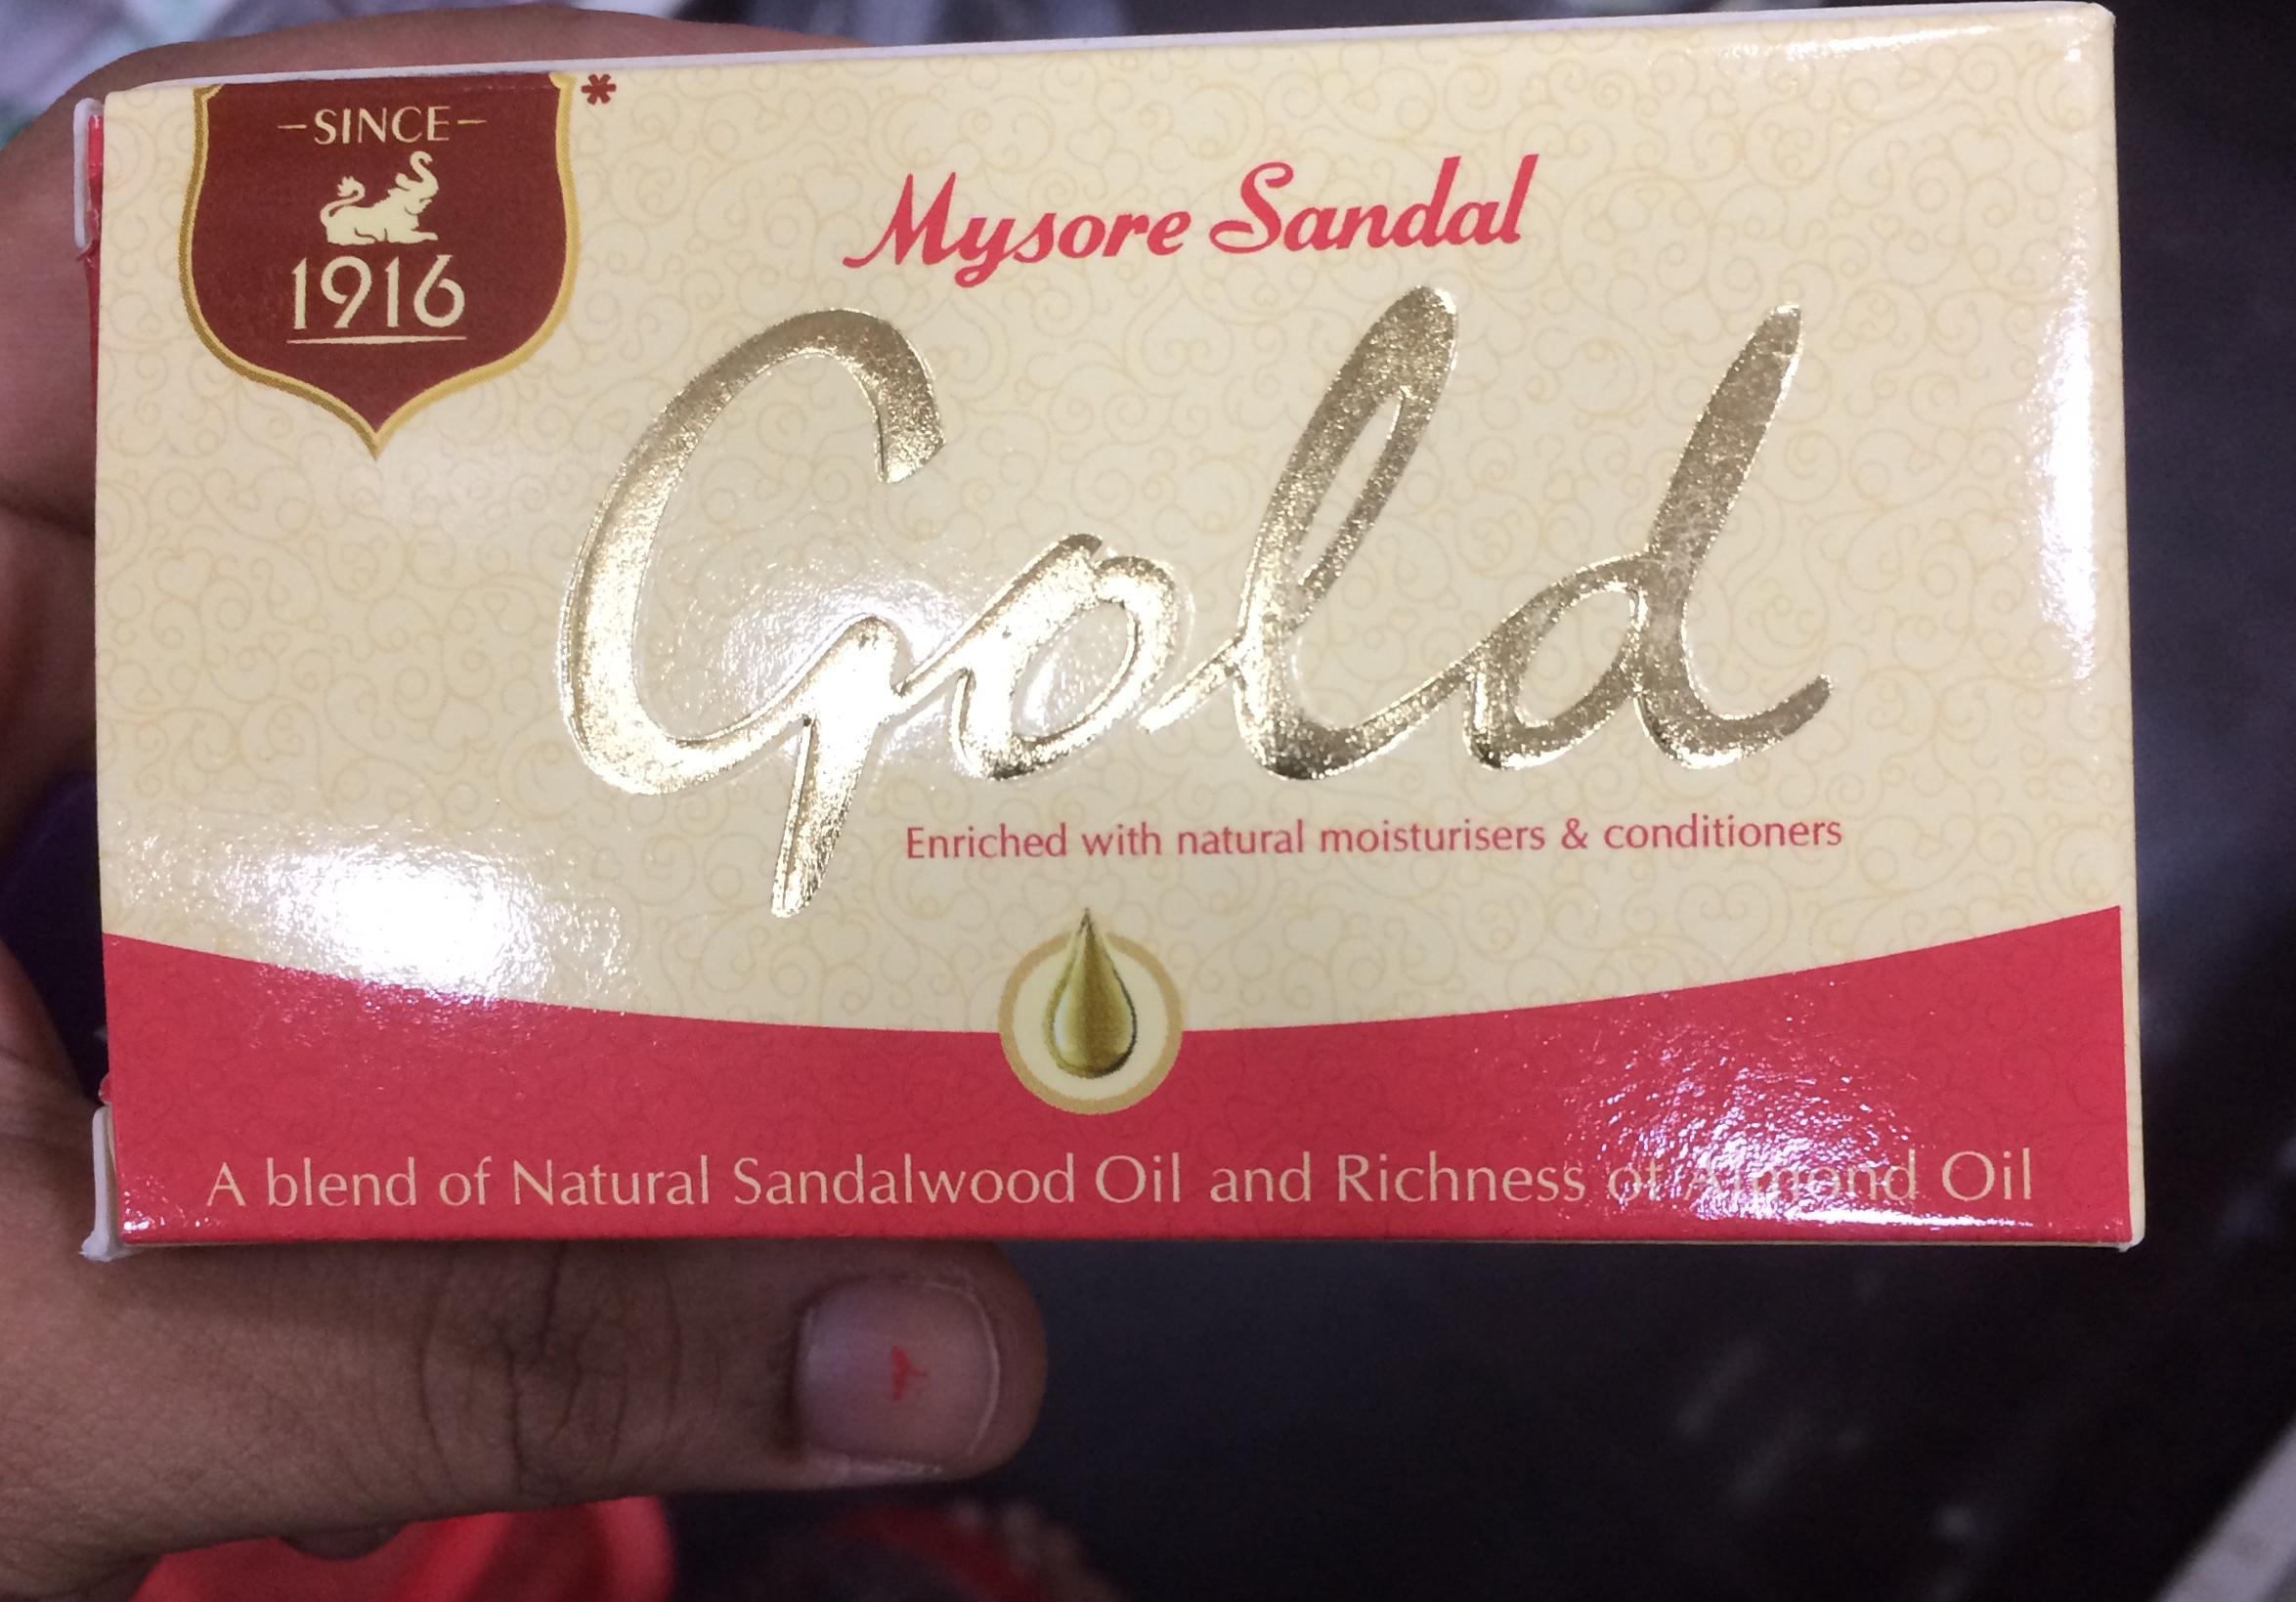 Mysore Sandal Gold Soap-An Aromatic Soap-By sindoori_jayaprakash-2